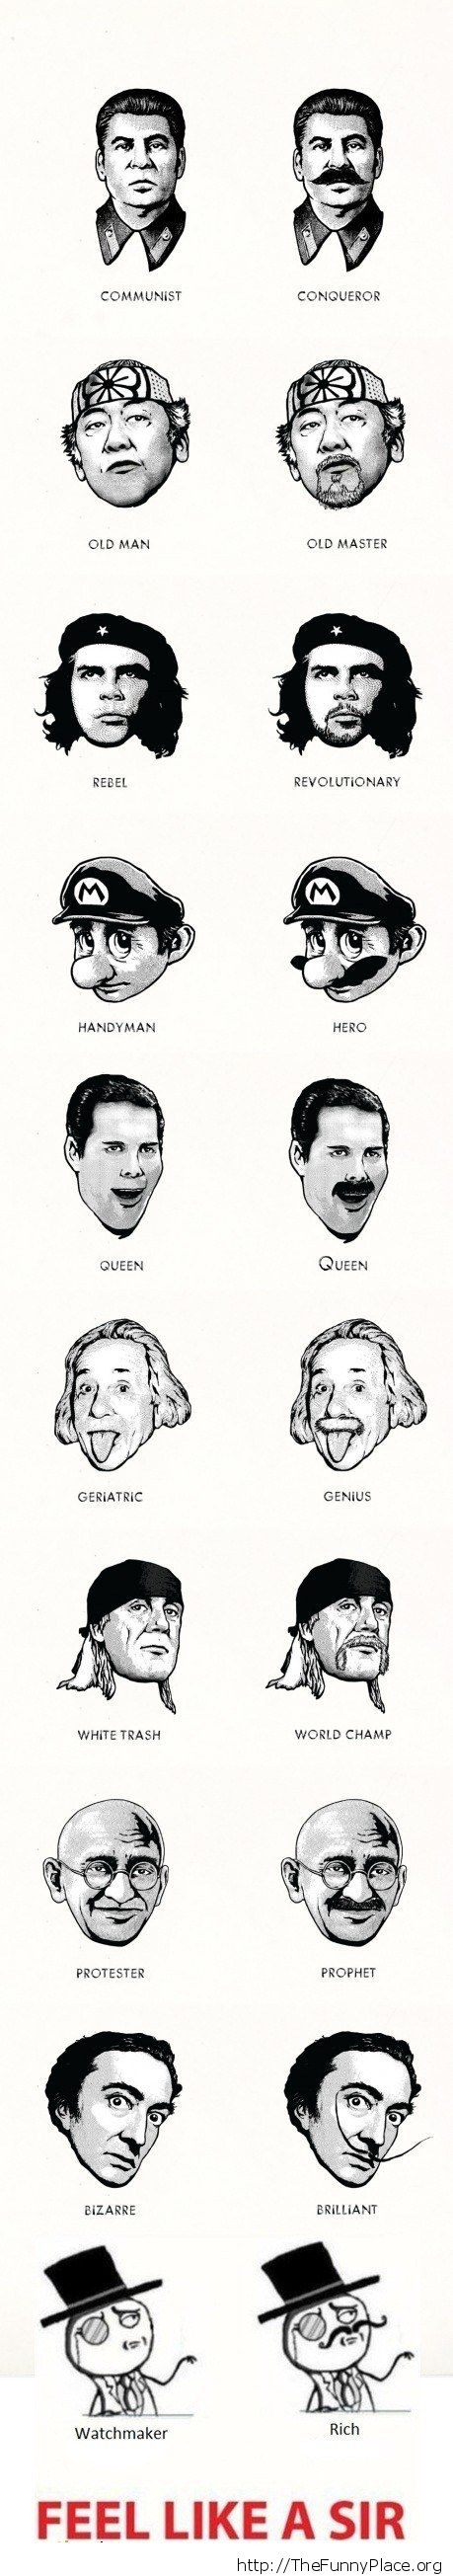 The power of a mustache